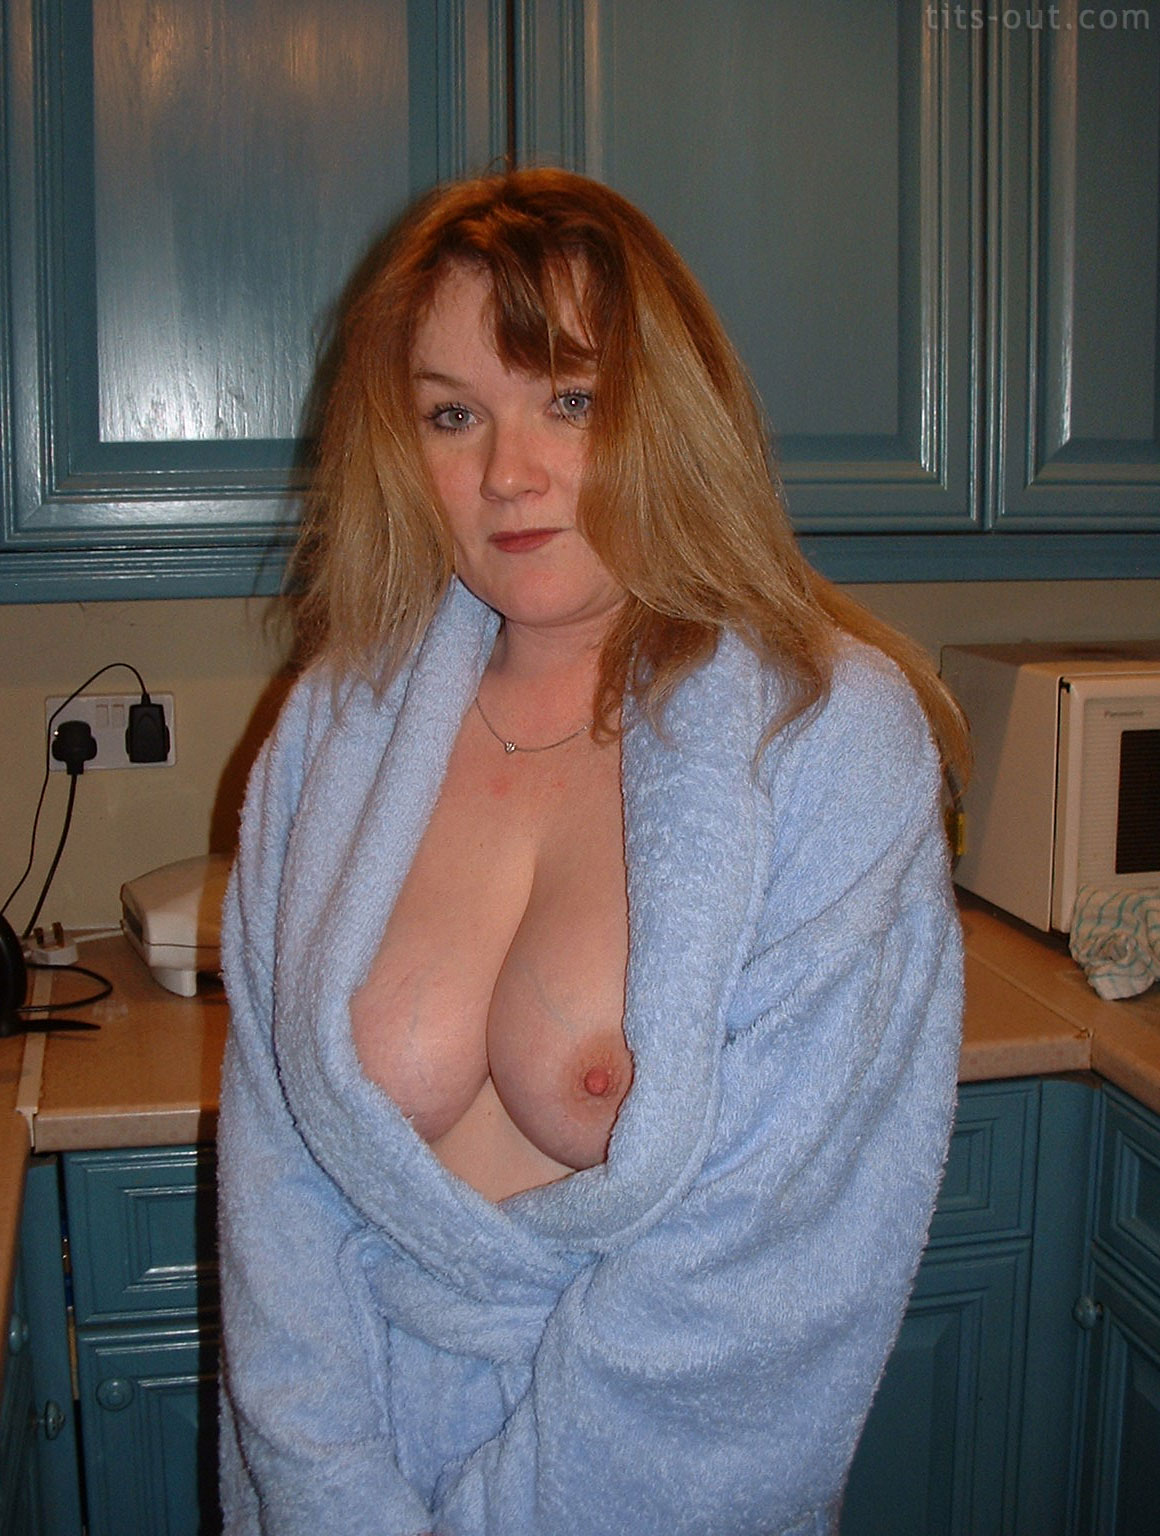 Big tits hanging out of robe